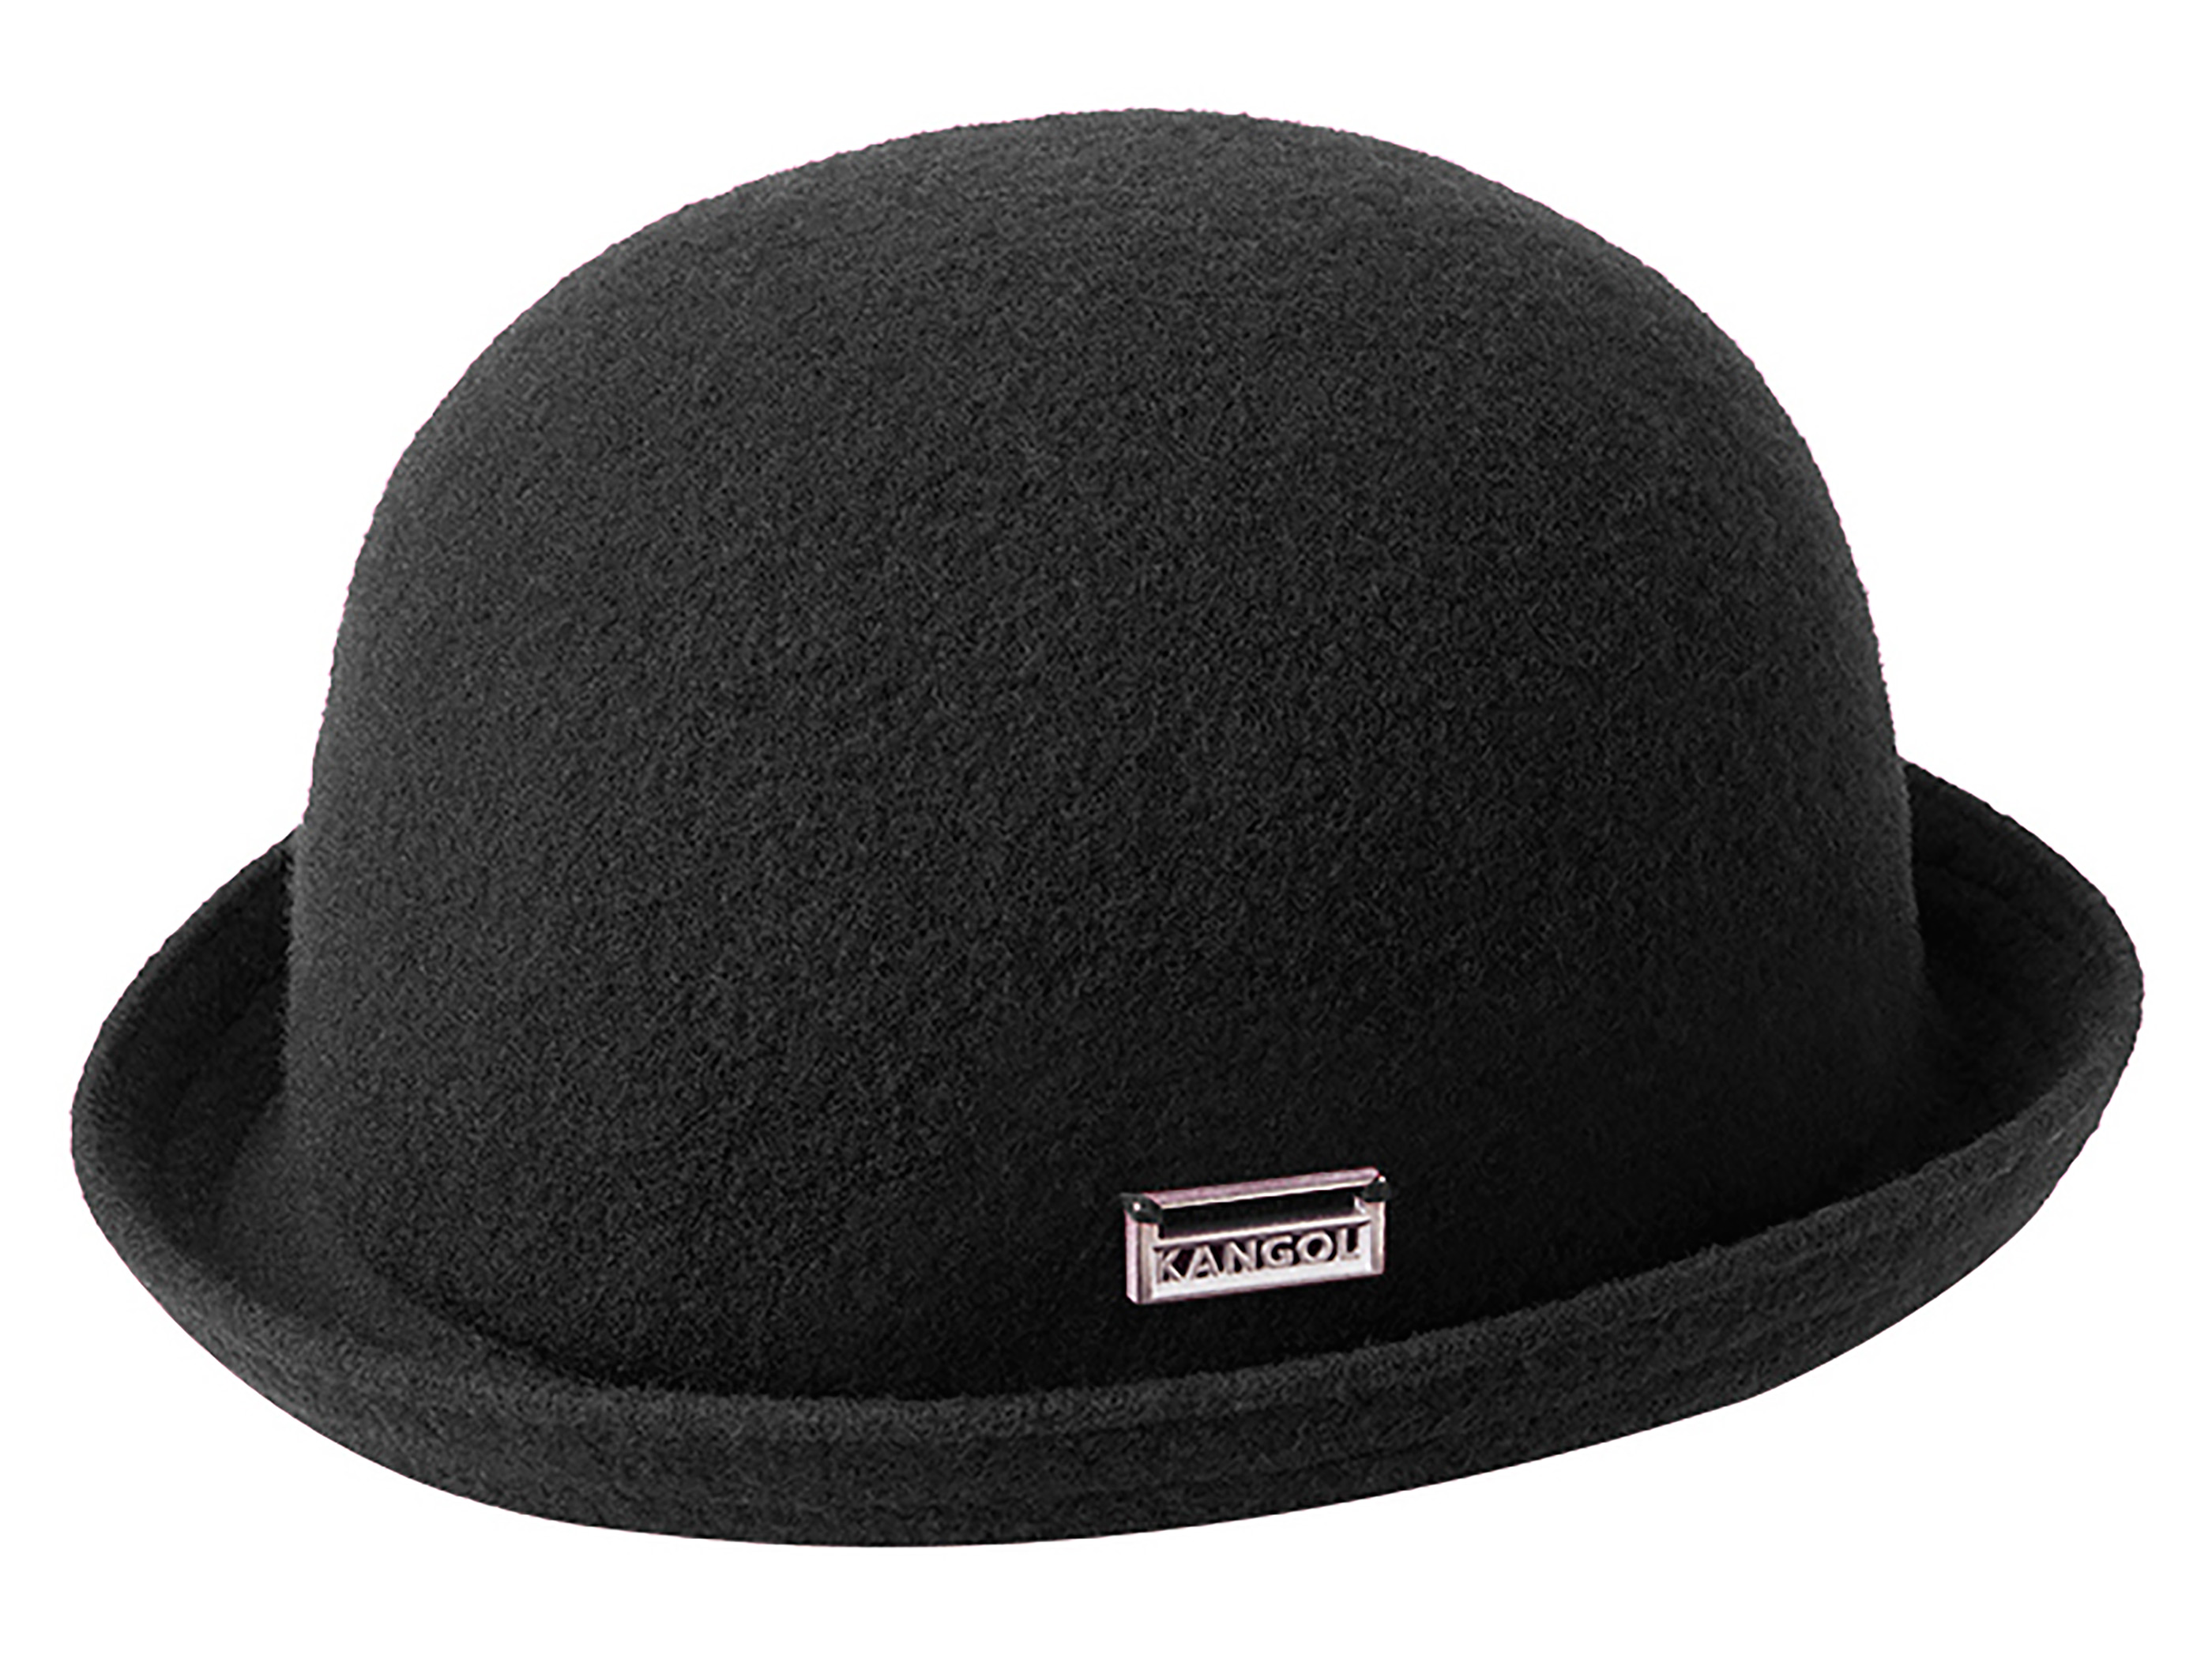 kangol wool bombin bowler aus wolle hut. Black Bedroom Furniture Sets. Home Design Ideas